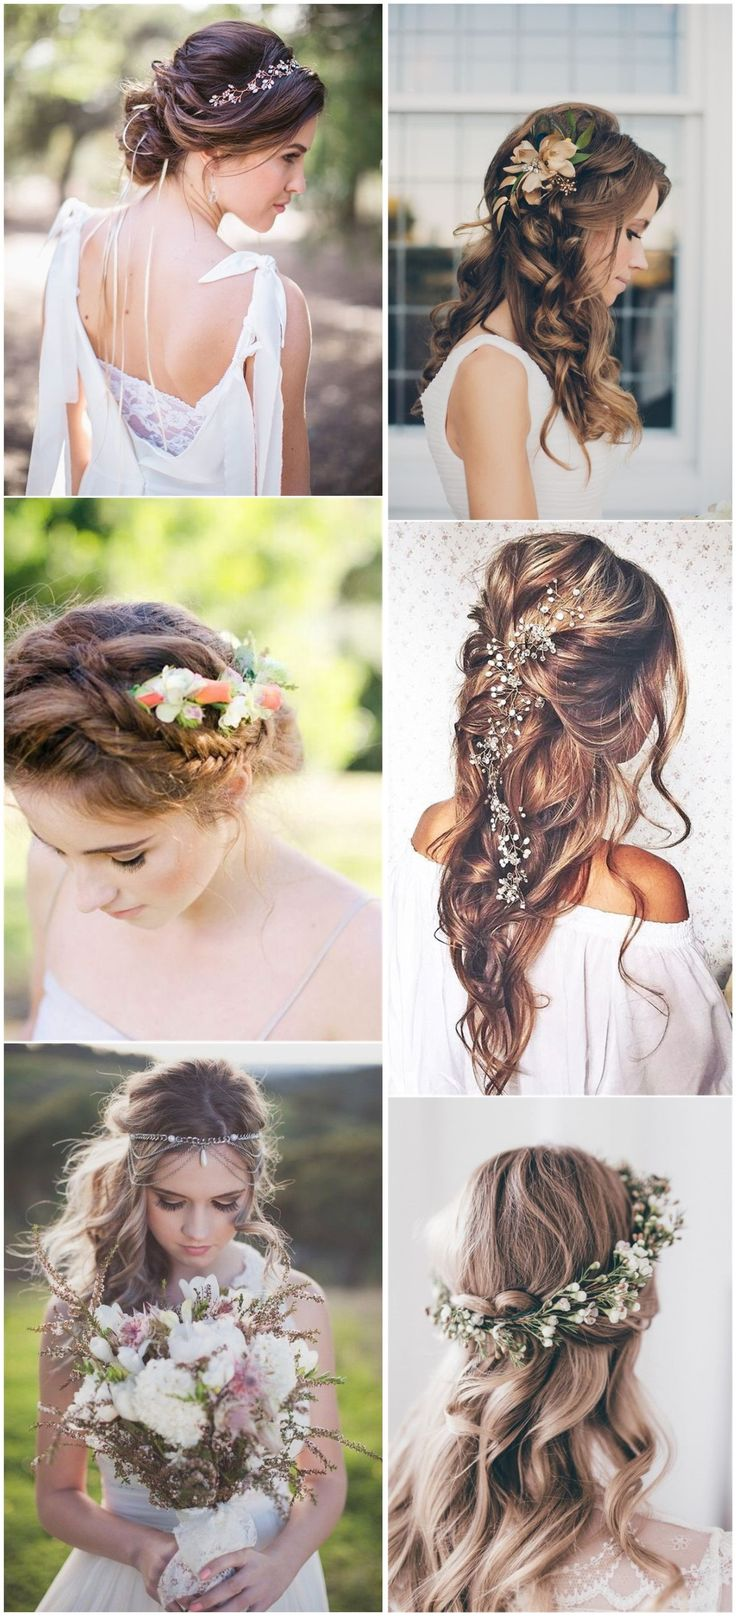 Boho wedding hairstyle long hairs long hairstyle galleries - Wedding Hairstyles 21 Inspiring Boho Bridal Hairstyles Ideas To Steal